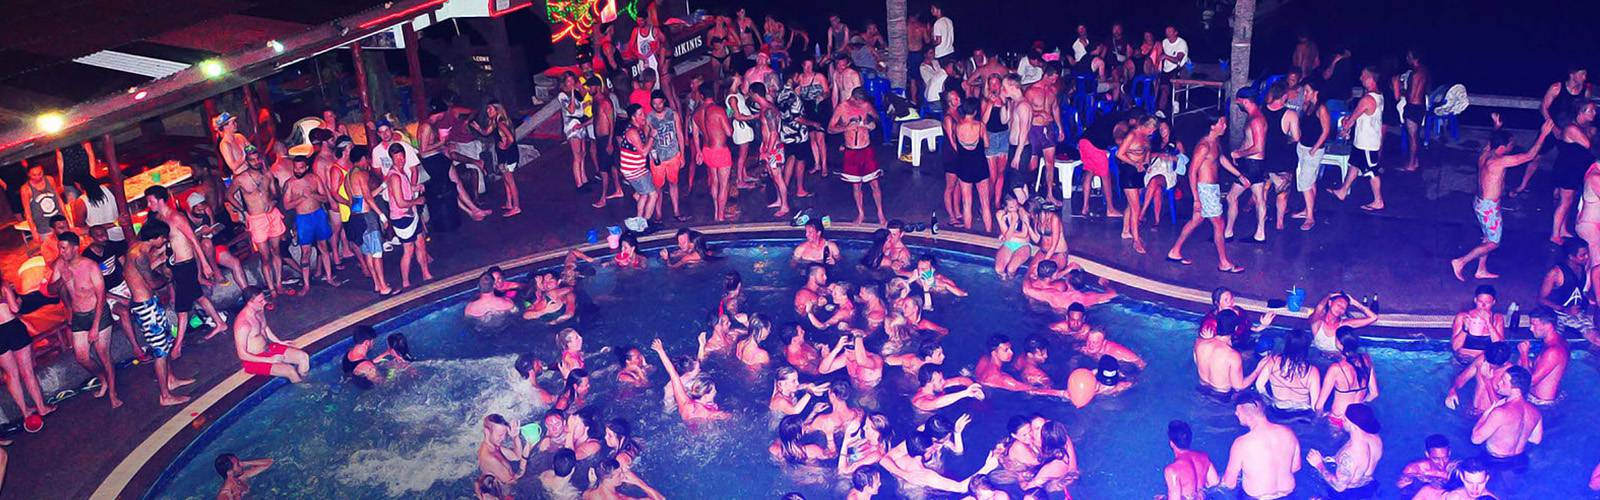 4.The-Original-Pool-Party